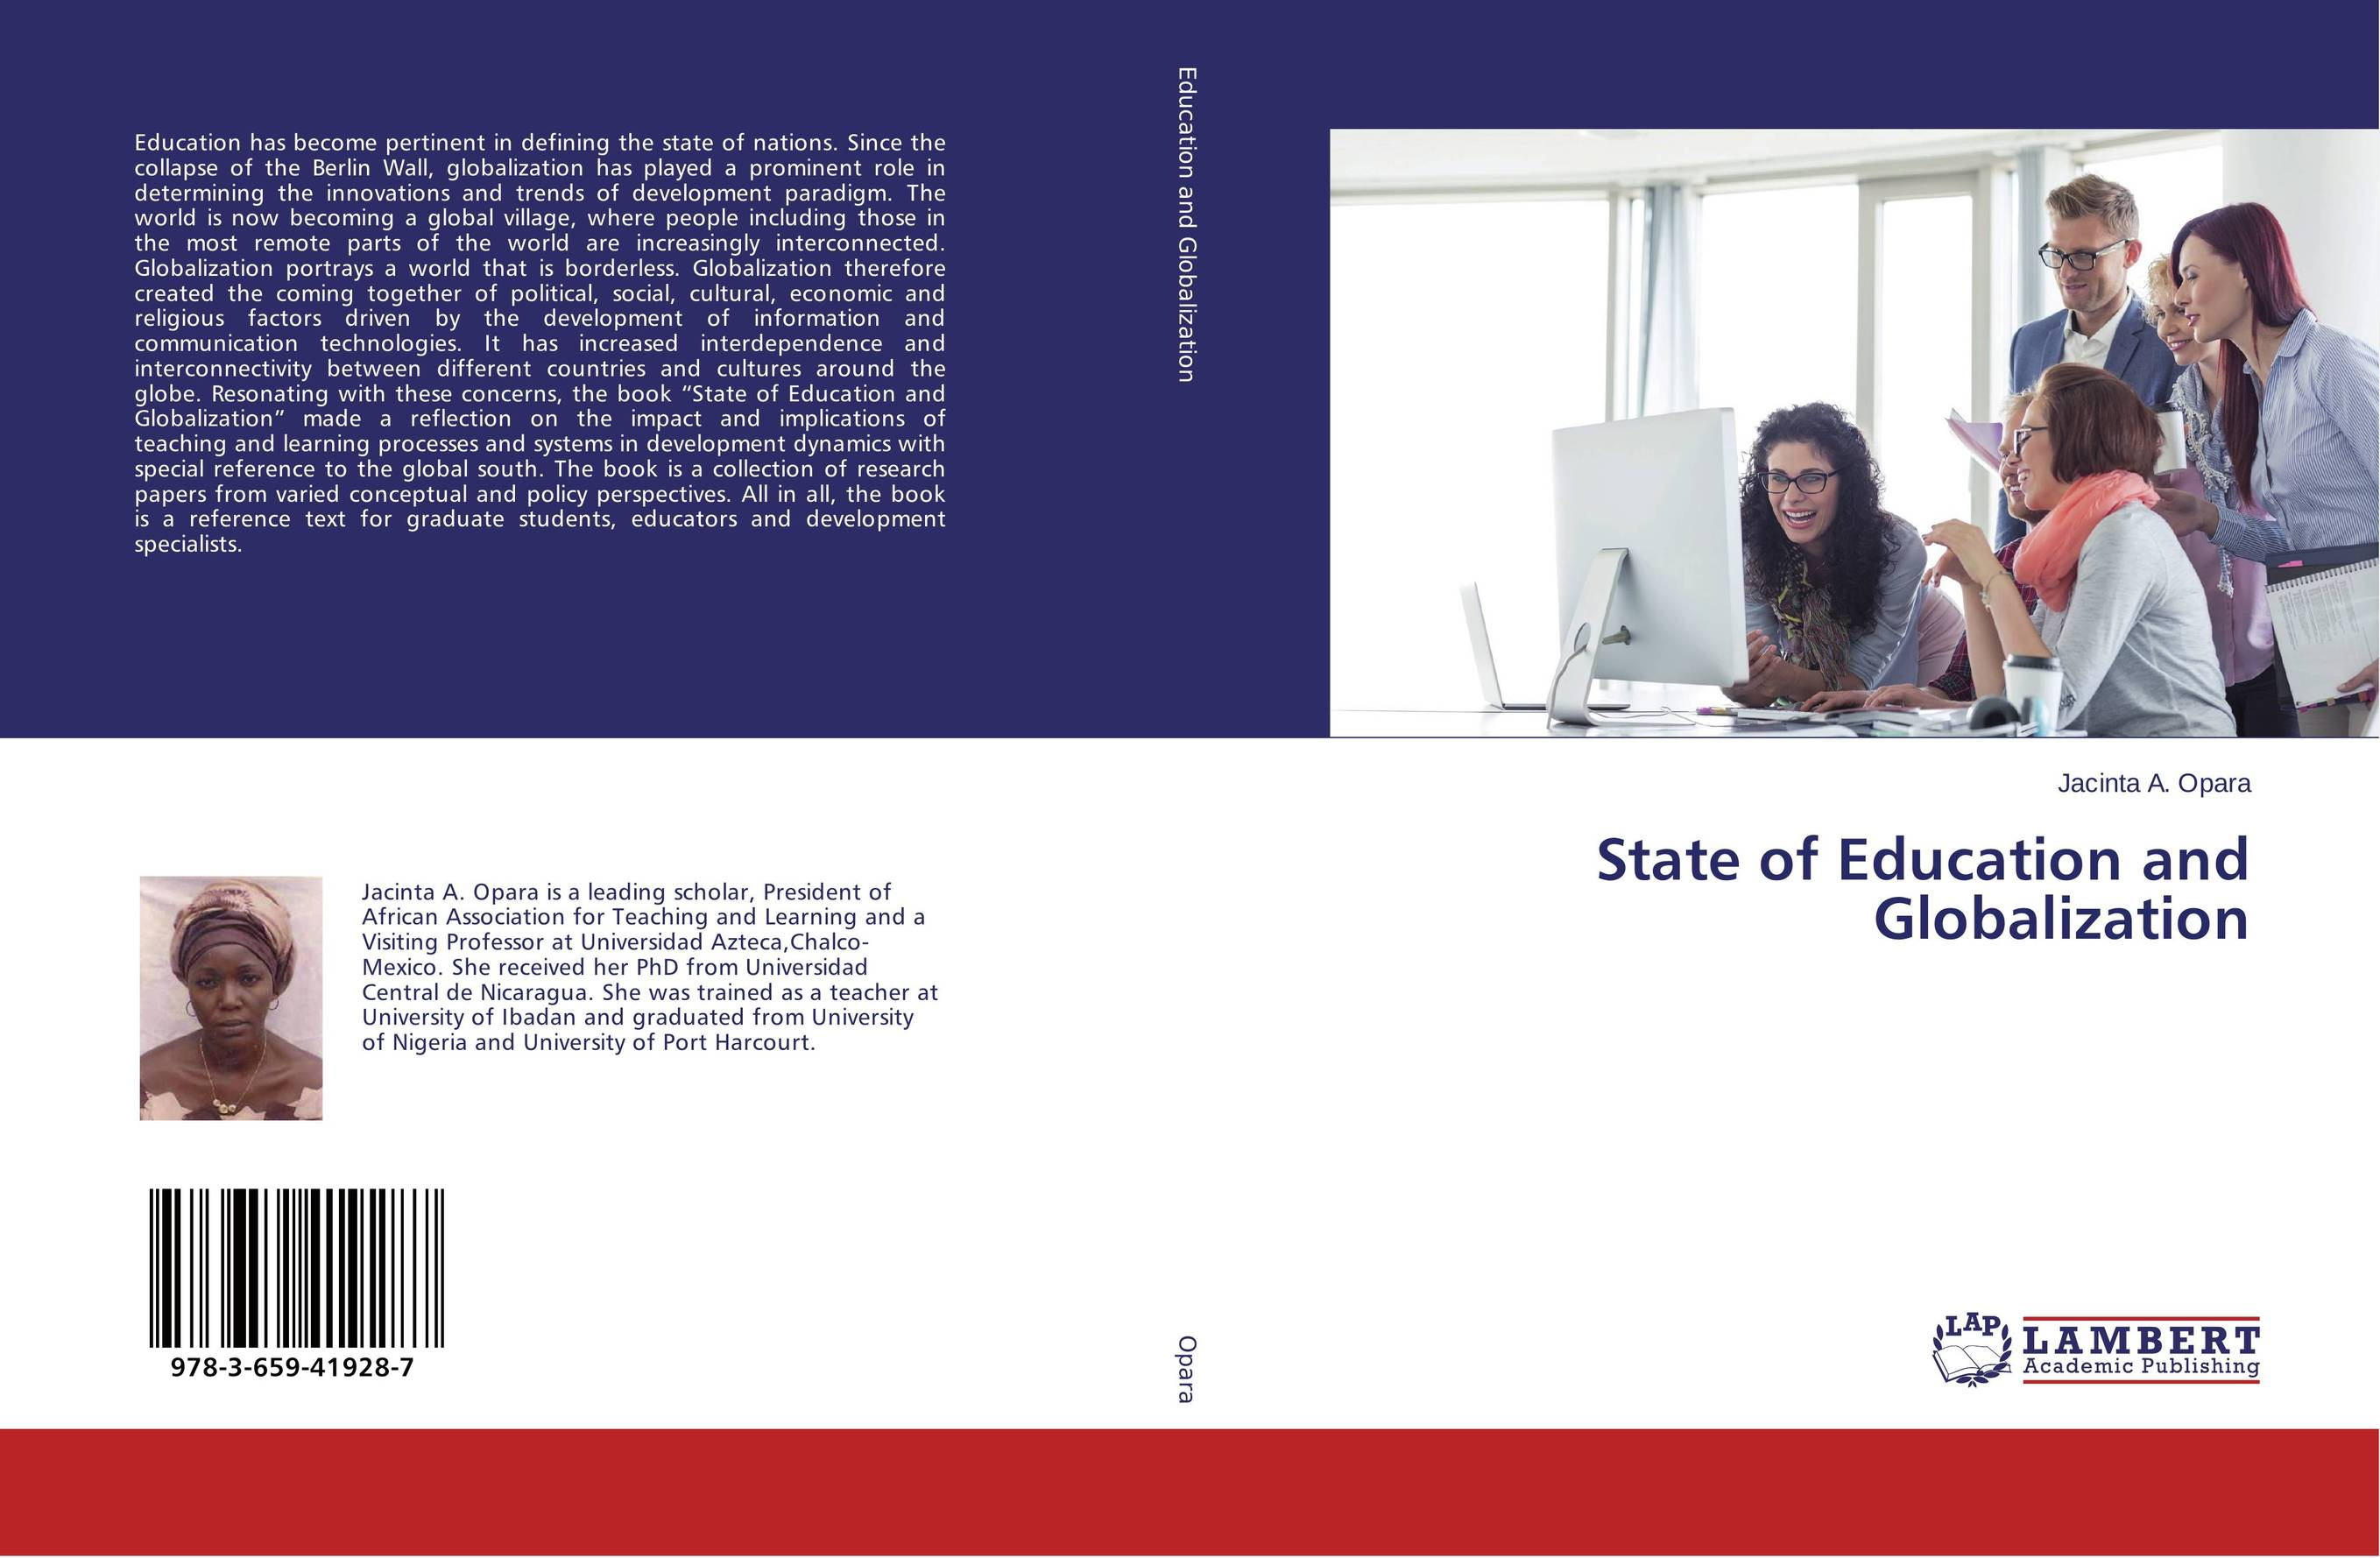 State of Education and Globalization